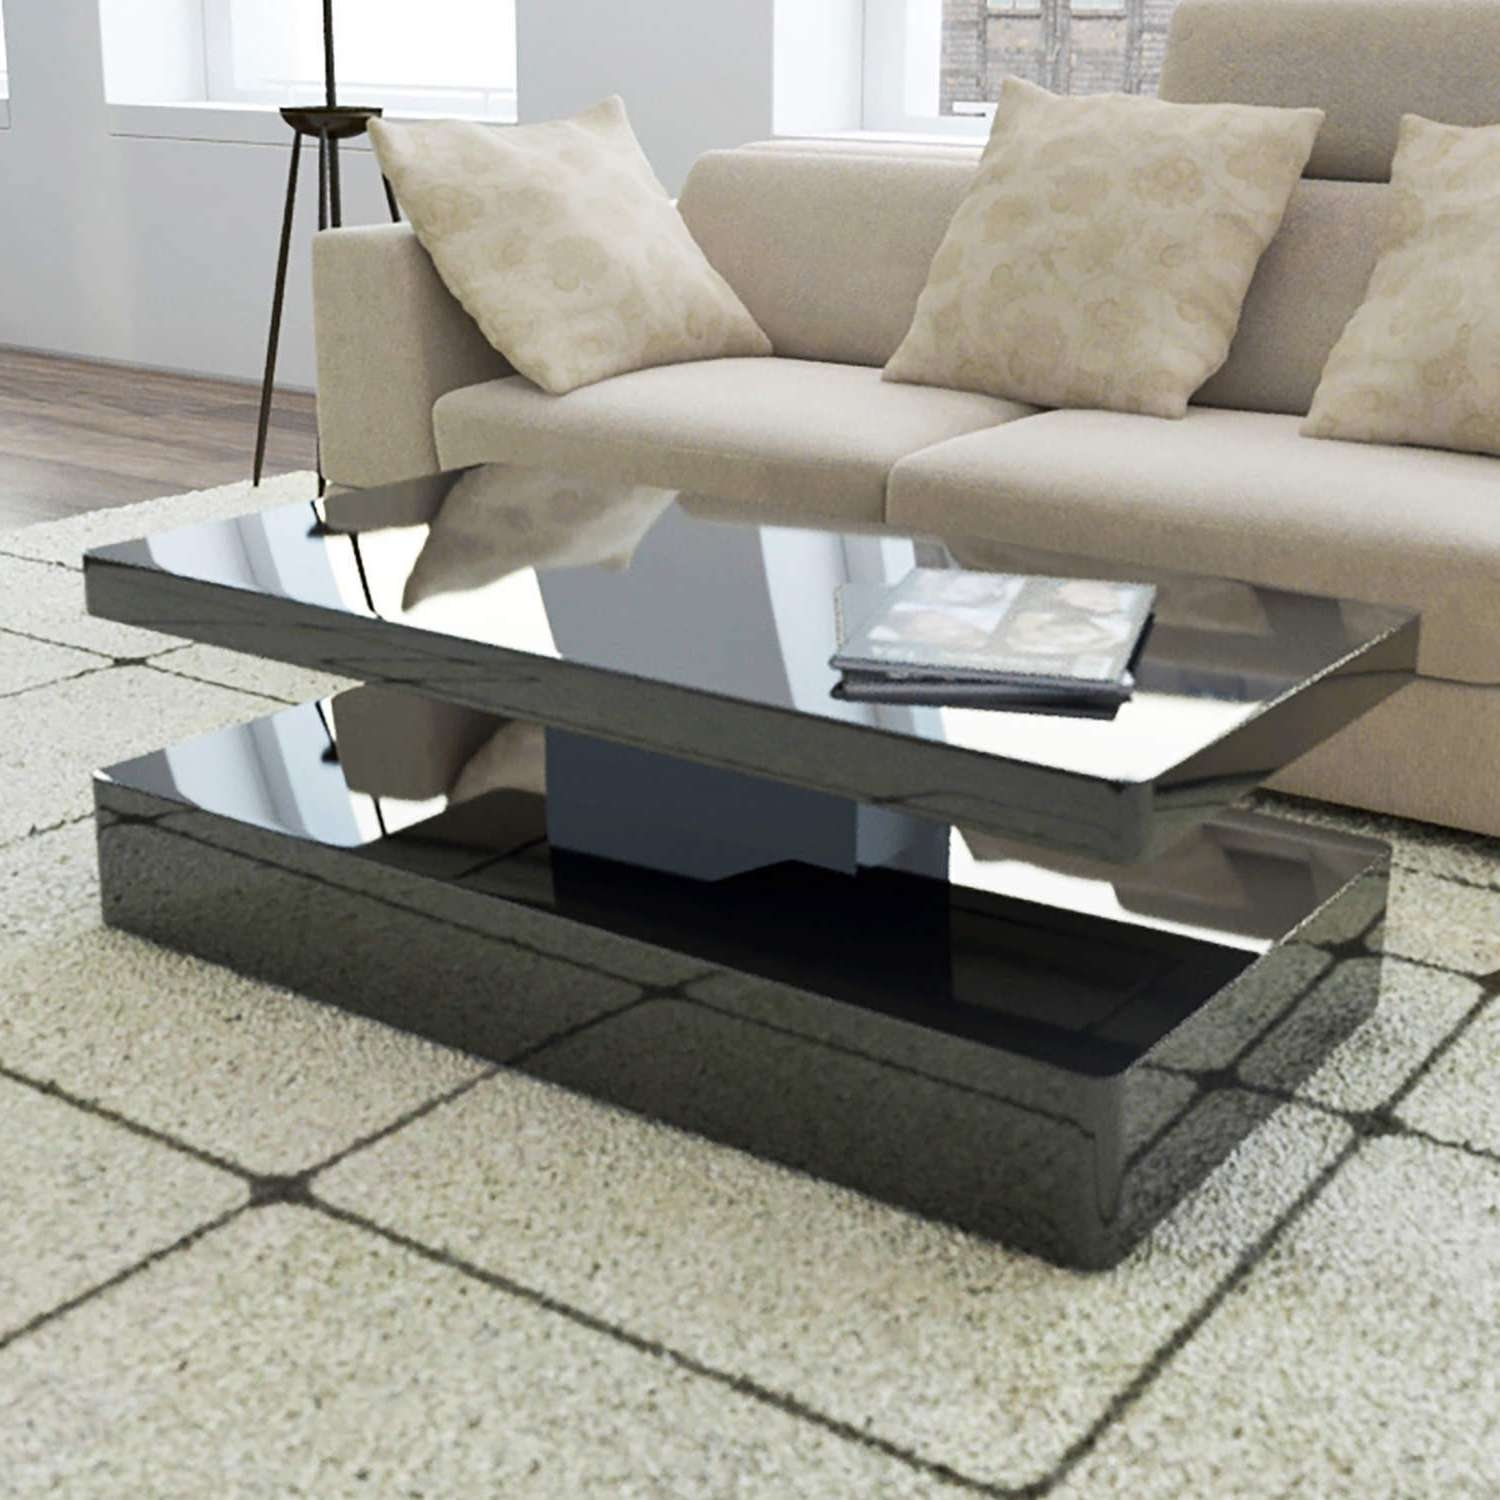 Tiffany Black High Gloss Rectangular Coffee Table With Led With Regard To Most Recent High Gloss Coffee Tables (View 6 of 20)